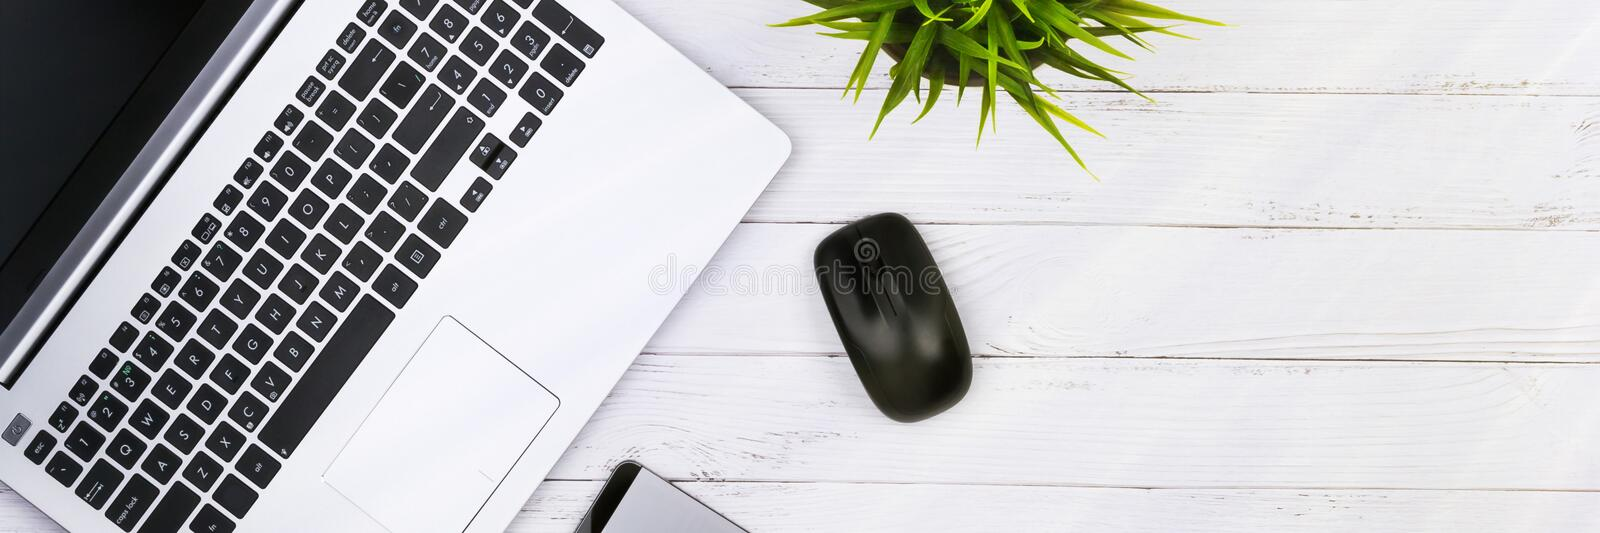 Working place on white wooden table with copy space. Laptop, mouse, phone, flower in a pot. Flat lay. Top view of blackboard. Office desk stock photography